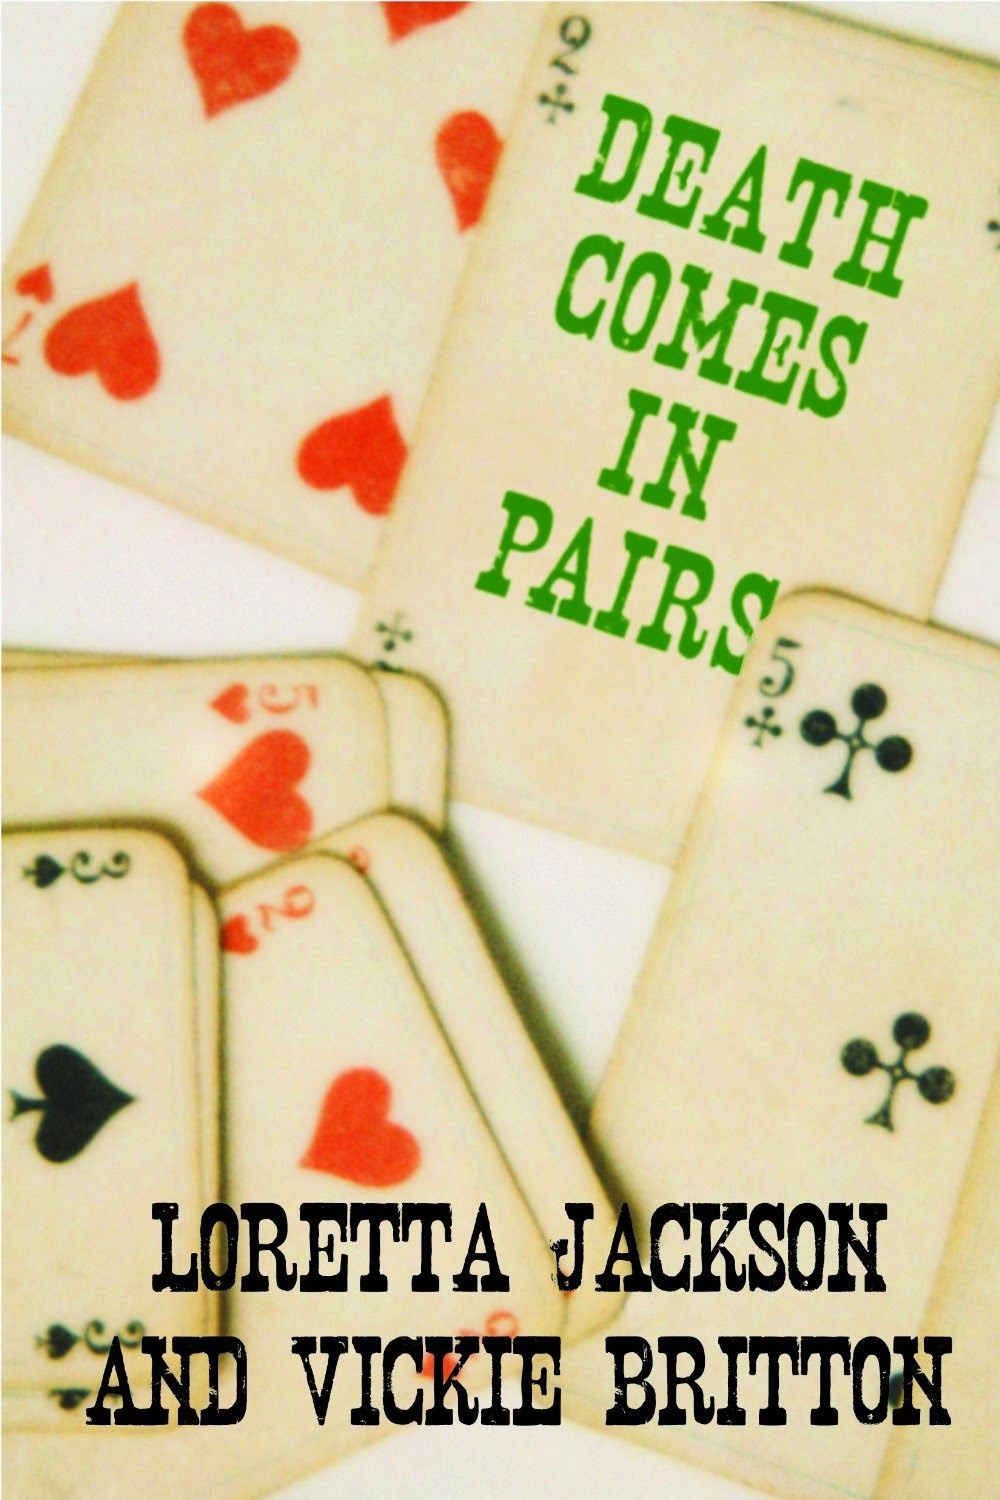 JULY SPECIAL 99c DEATH COMES IN PAIRS-A Western with a touch of romance and mystery